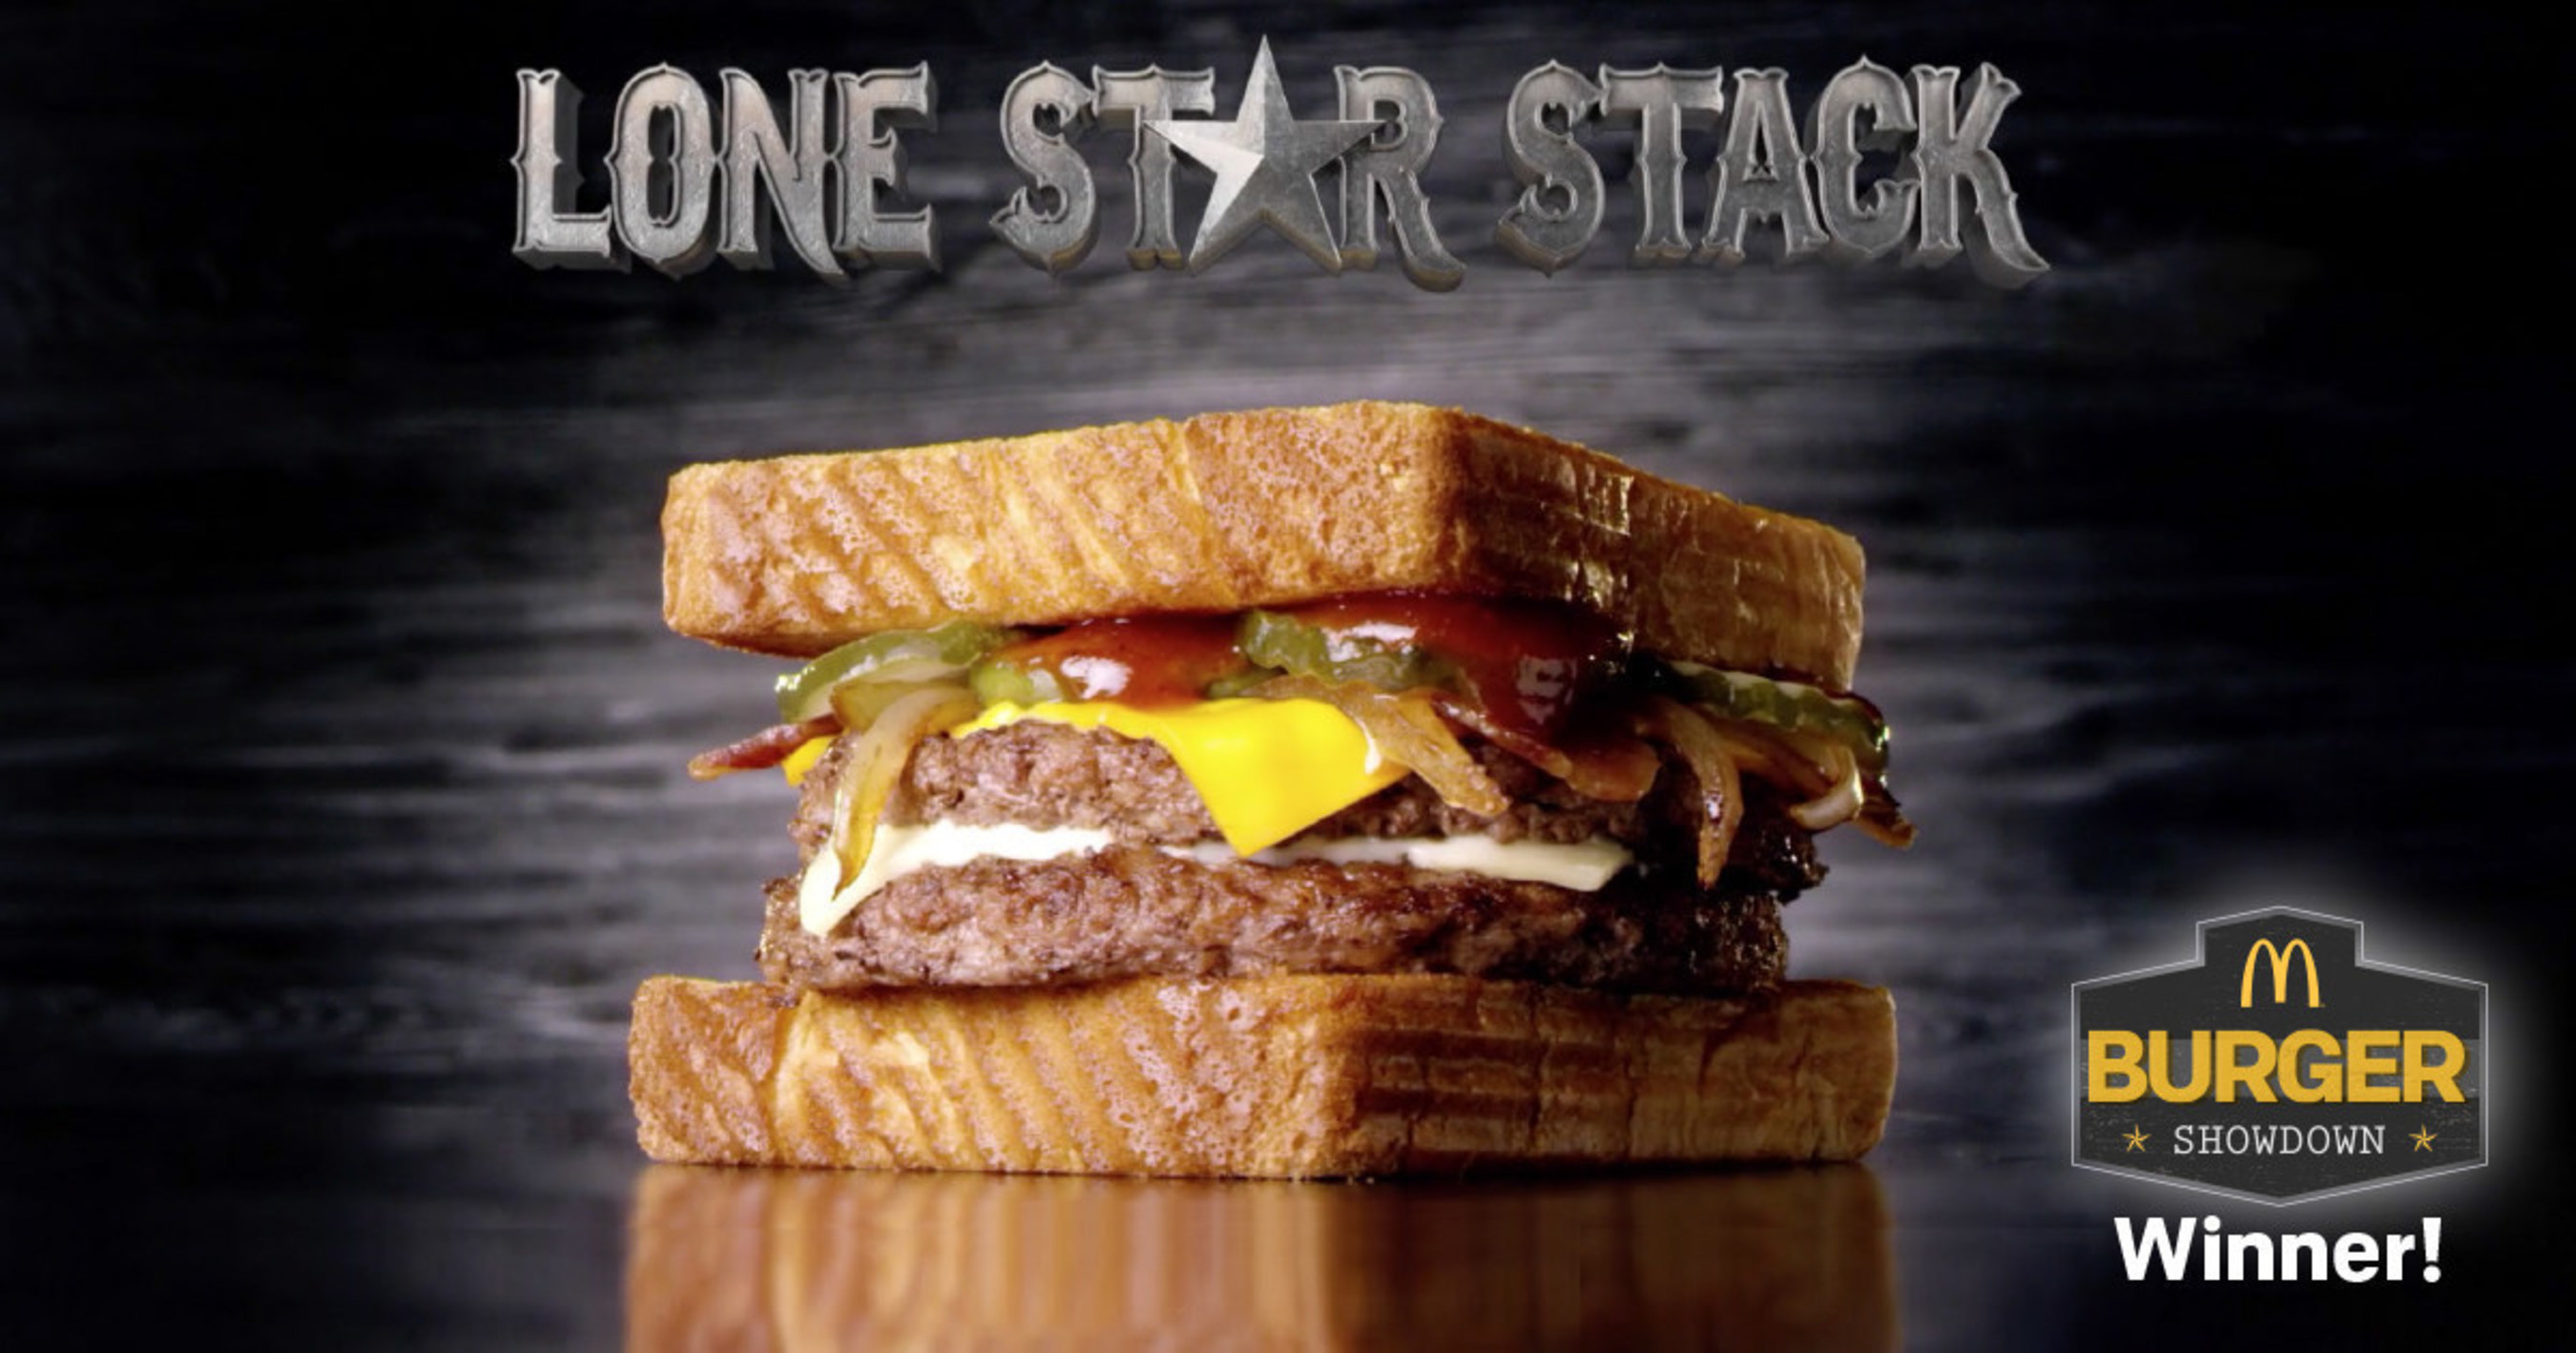 Lone Star Stack